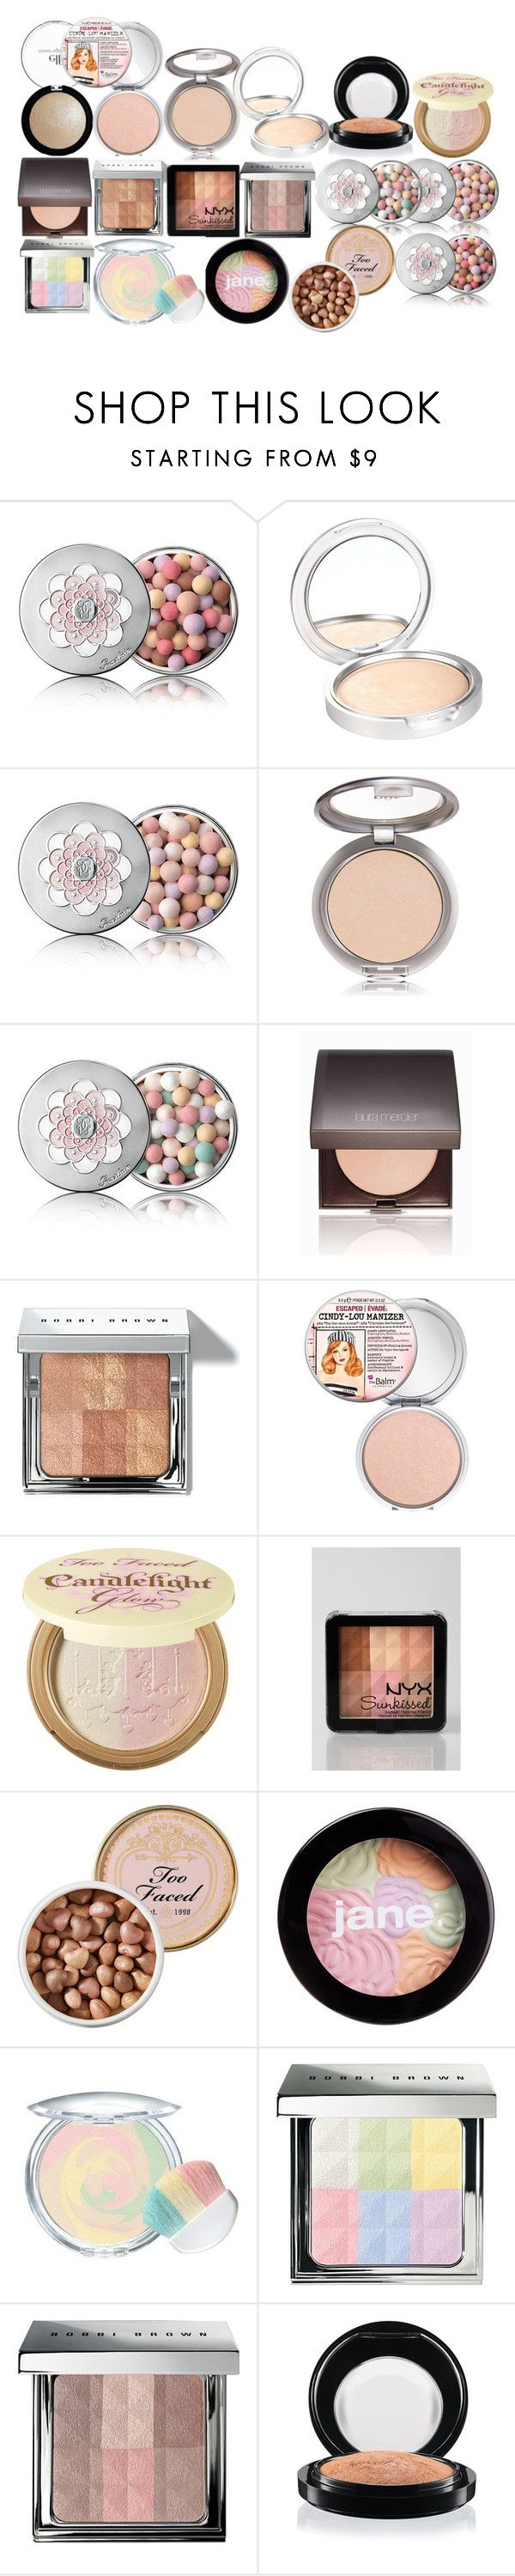 Makeup beauty and more jane cosmetics multi colored color correcting -  My Makeup Collection Part 5 Highlighting And Color Correcting Powders By Lulucutshall